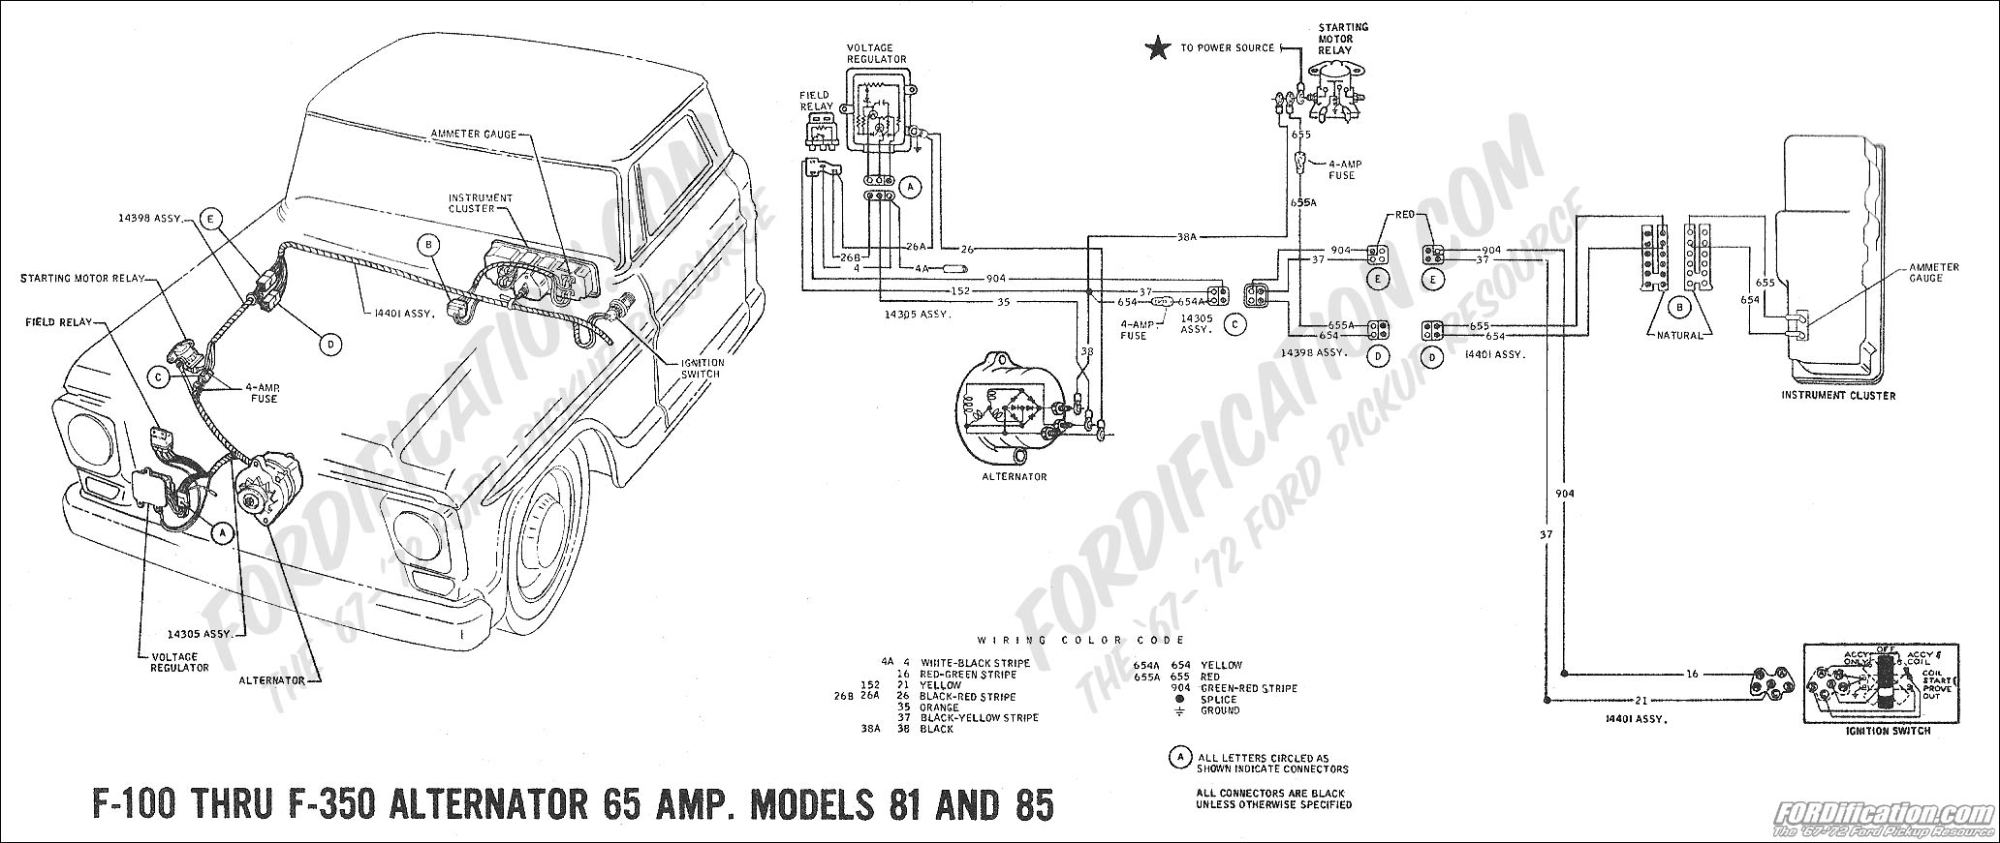 hight resolution of 1974 ford alternator wiring wiring diagram list 1974 ford f250 alternator wiring 1974 ford alternator wiring